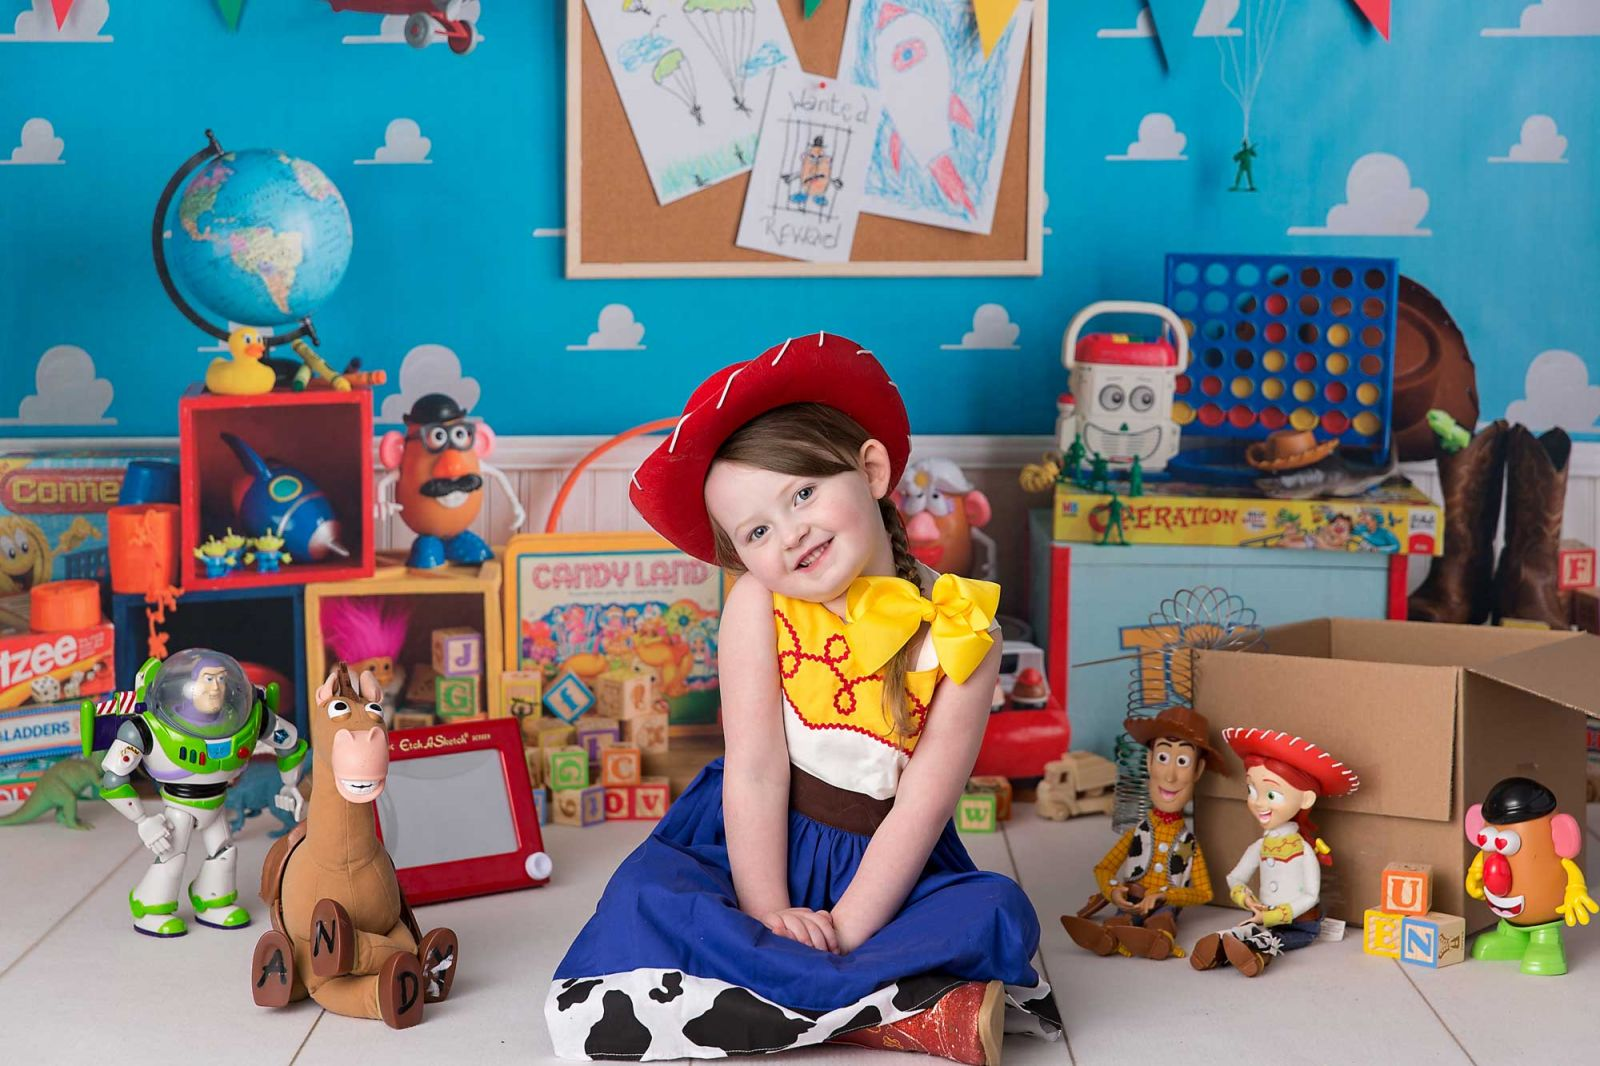 Toy Story themed children's portrait session of 5 year old little girl.